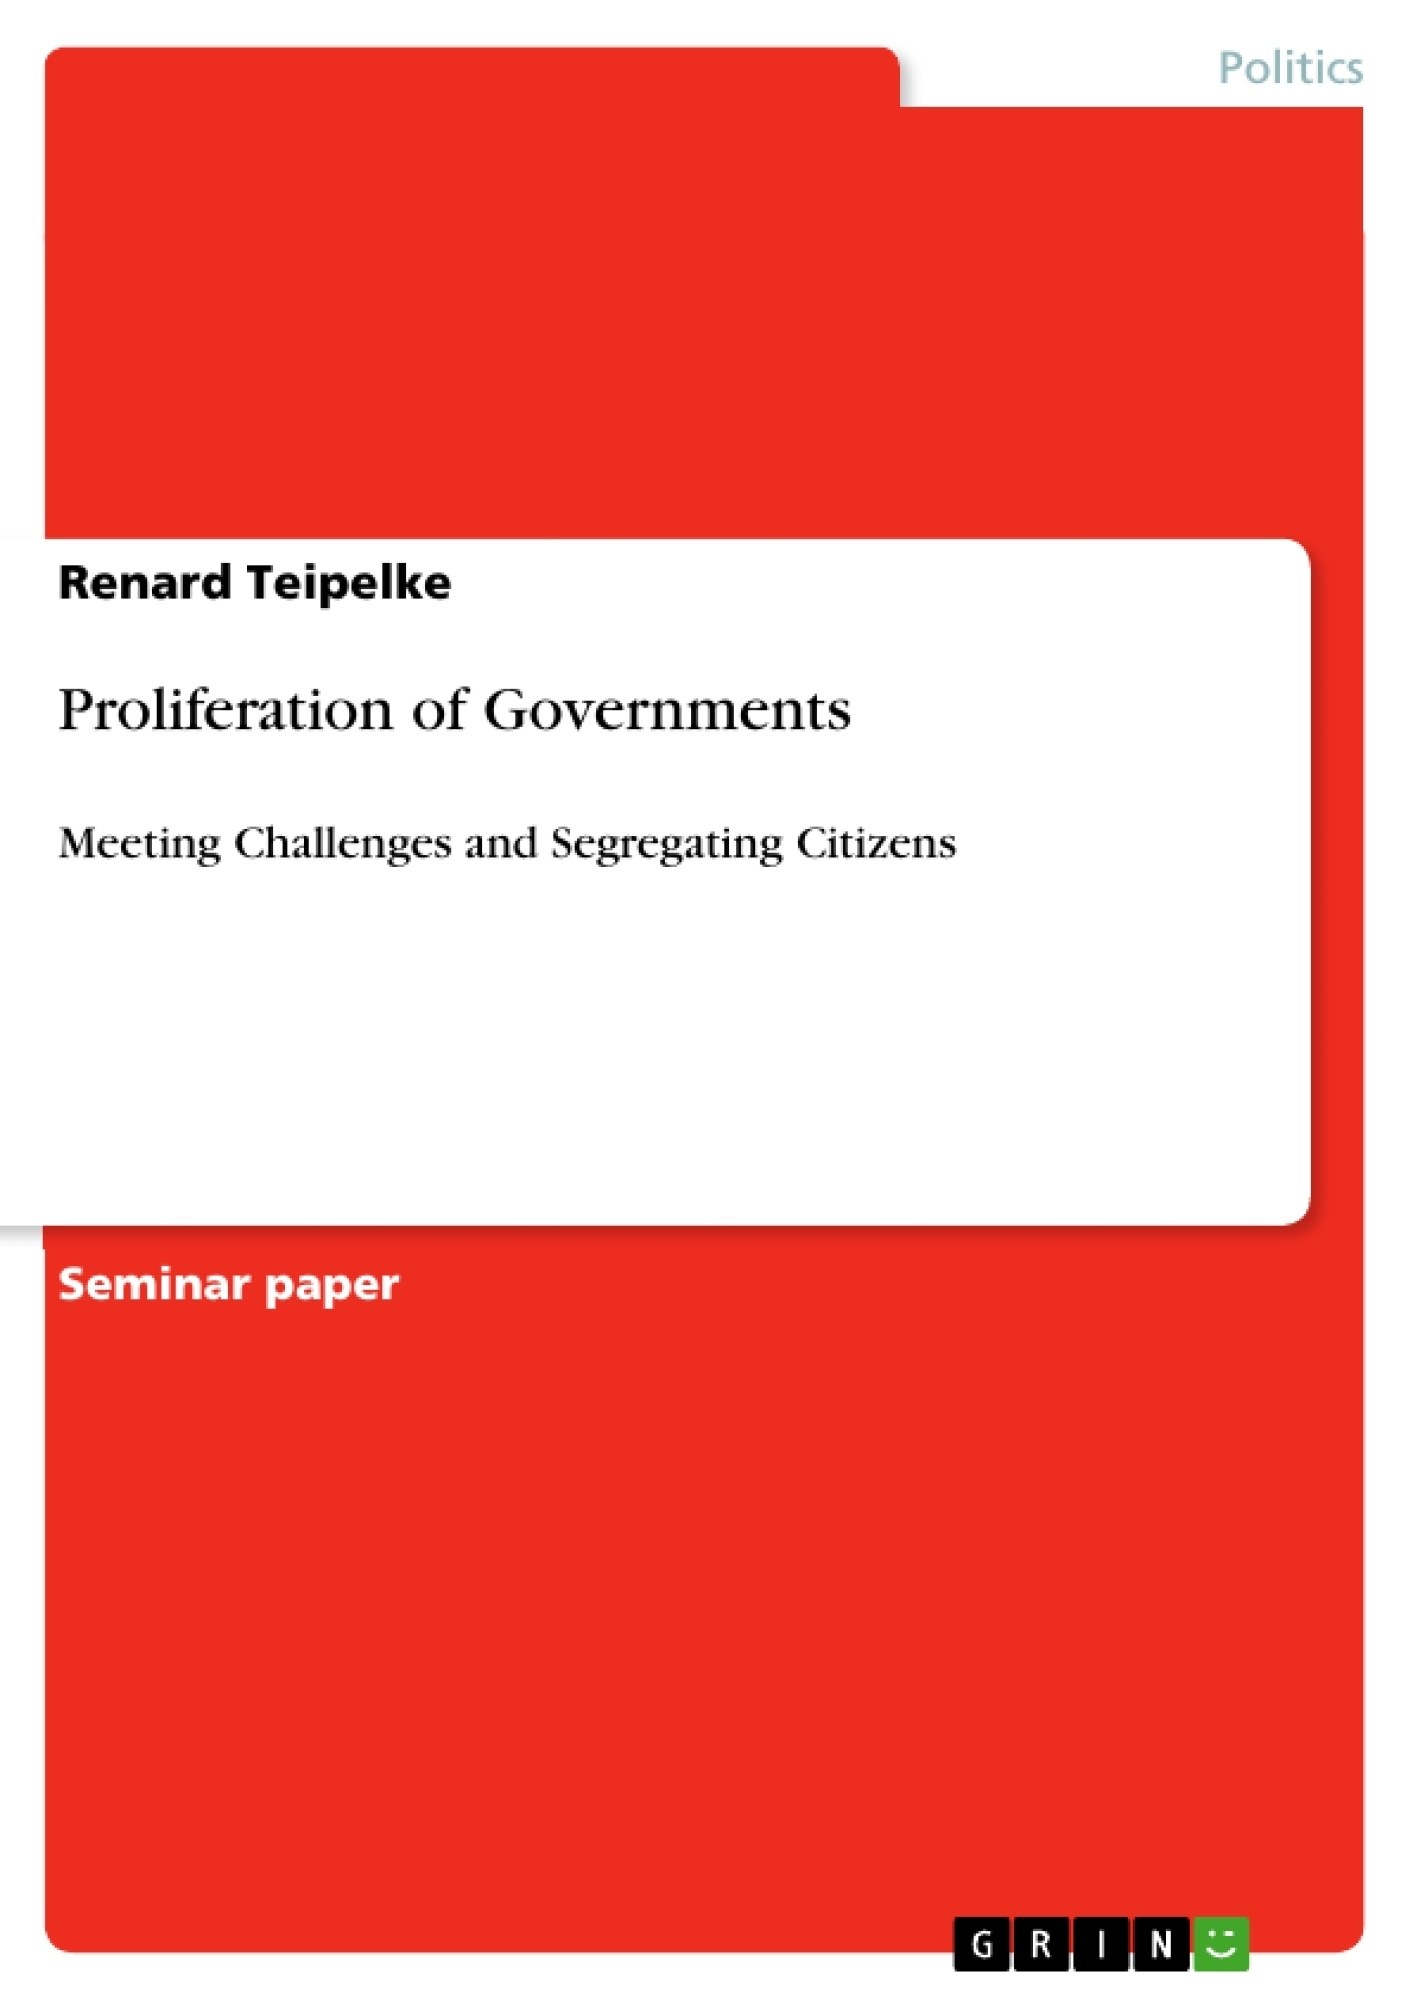 Title: Proliferation of Governments